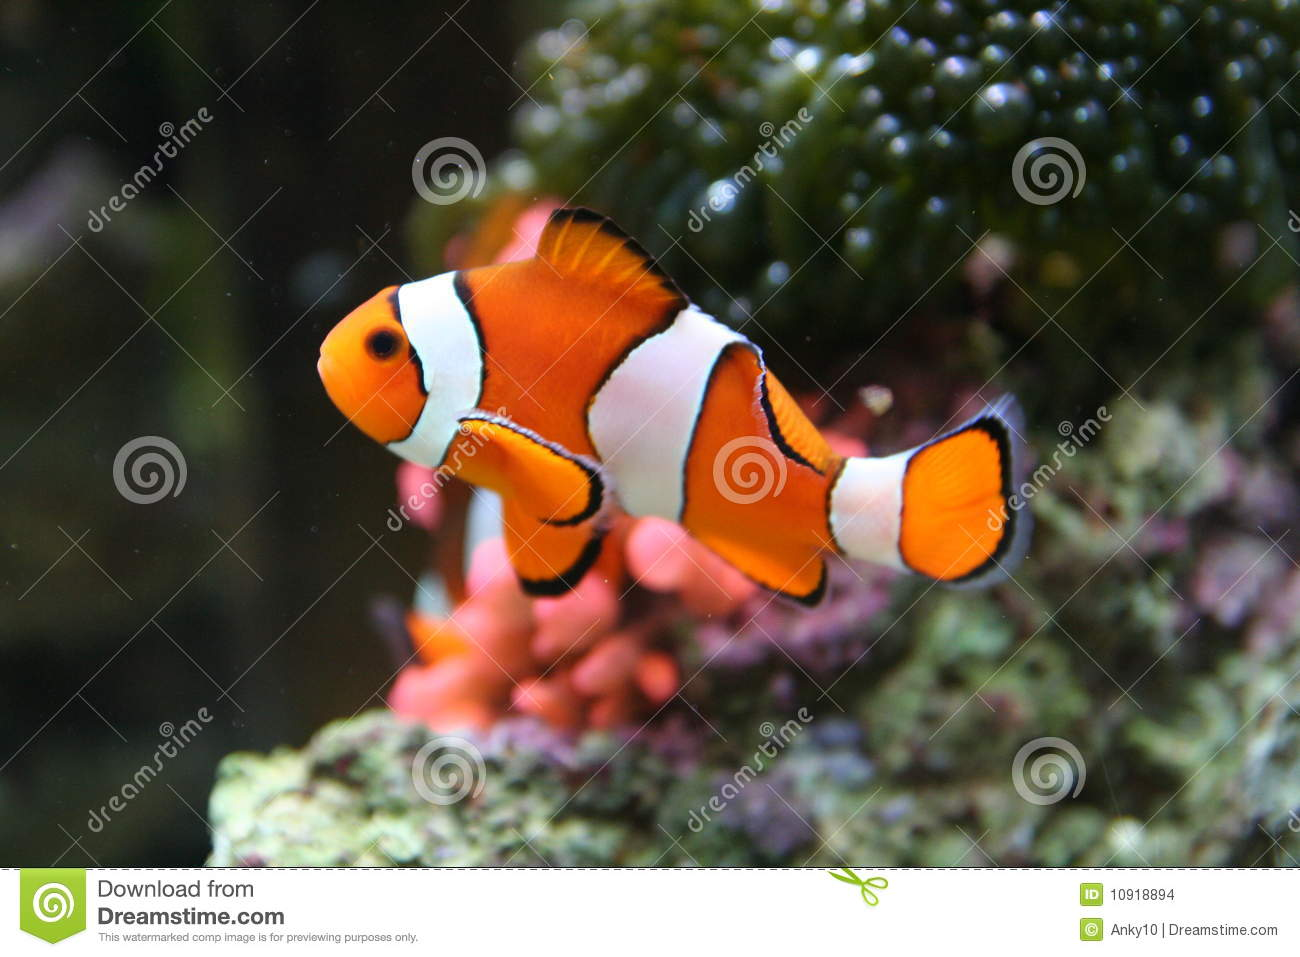 Nemo like clown fish stock images image 10918894 for Clown fish nemo